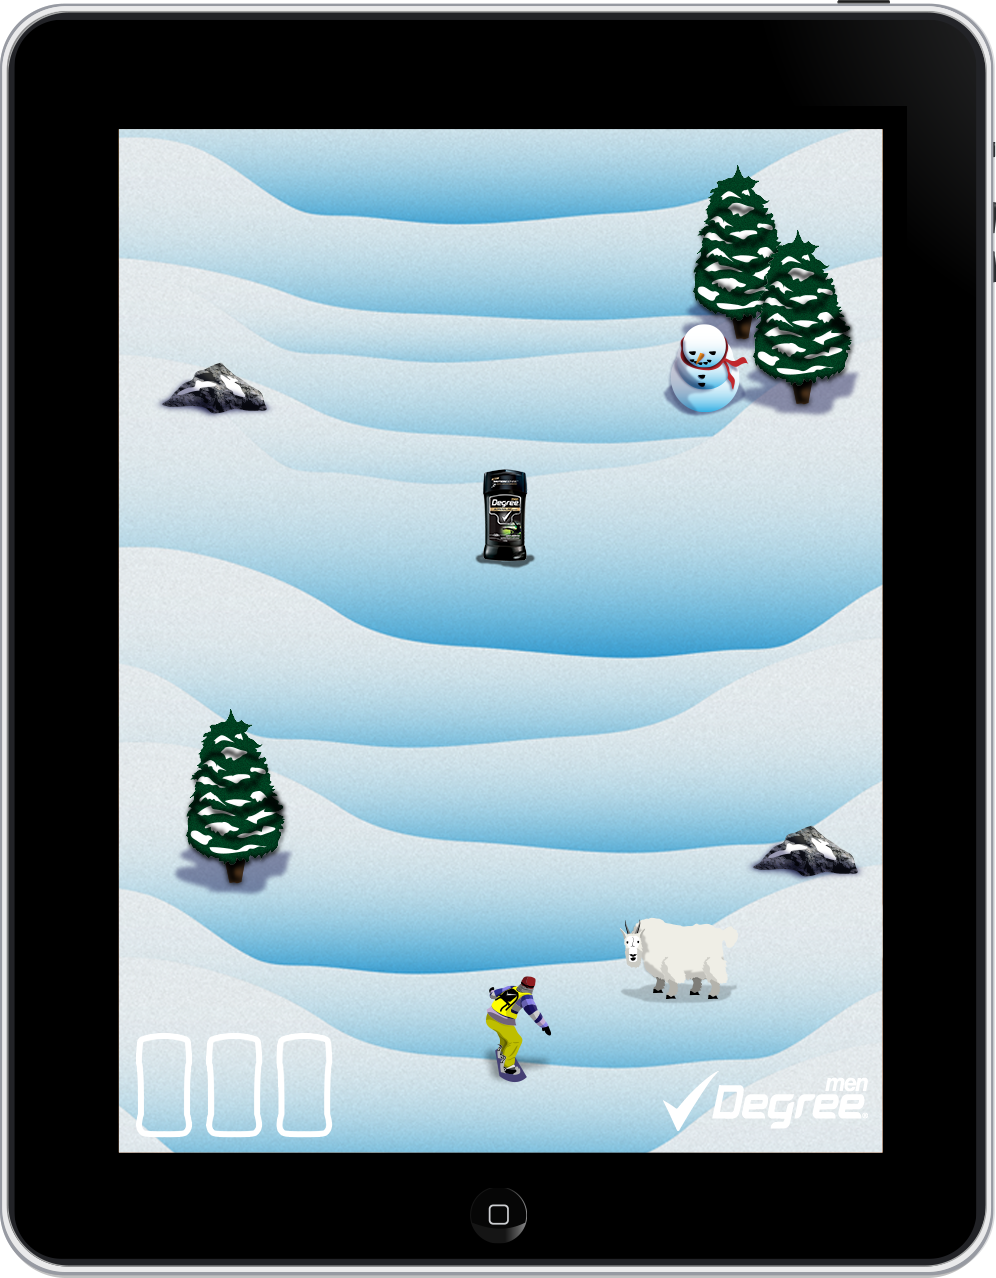 degree_iad_snowboarding_game